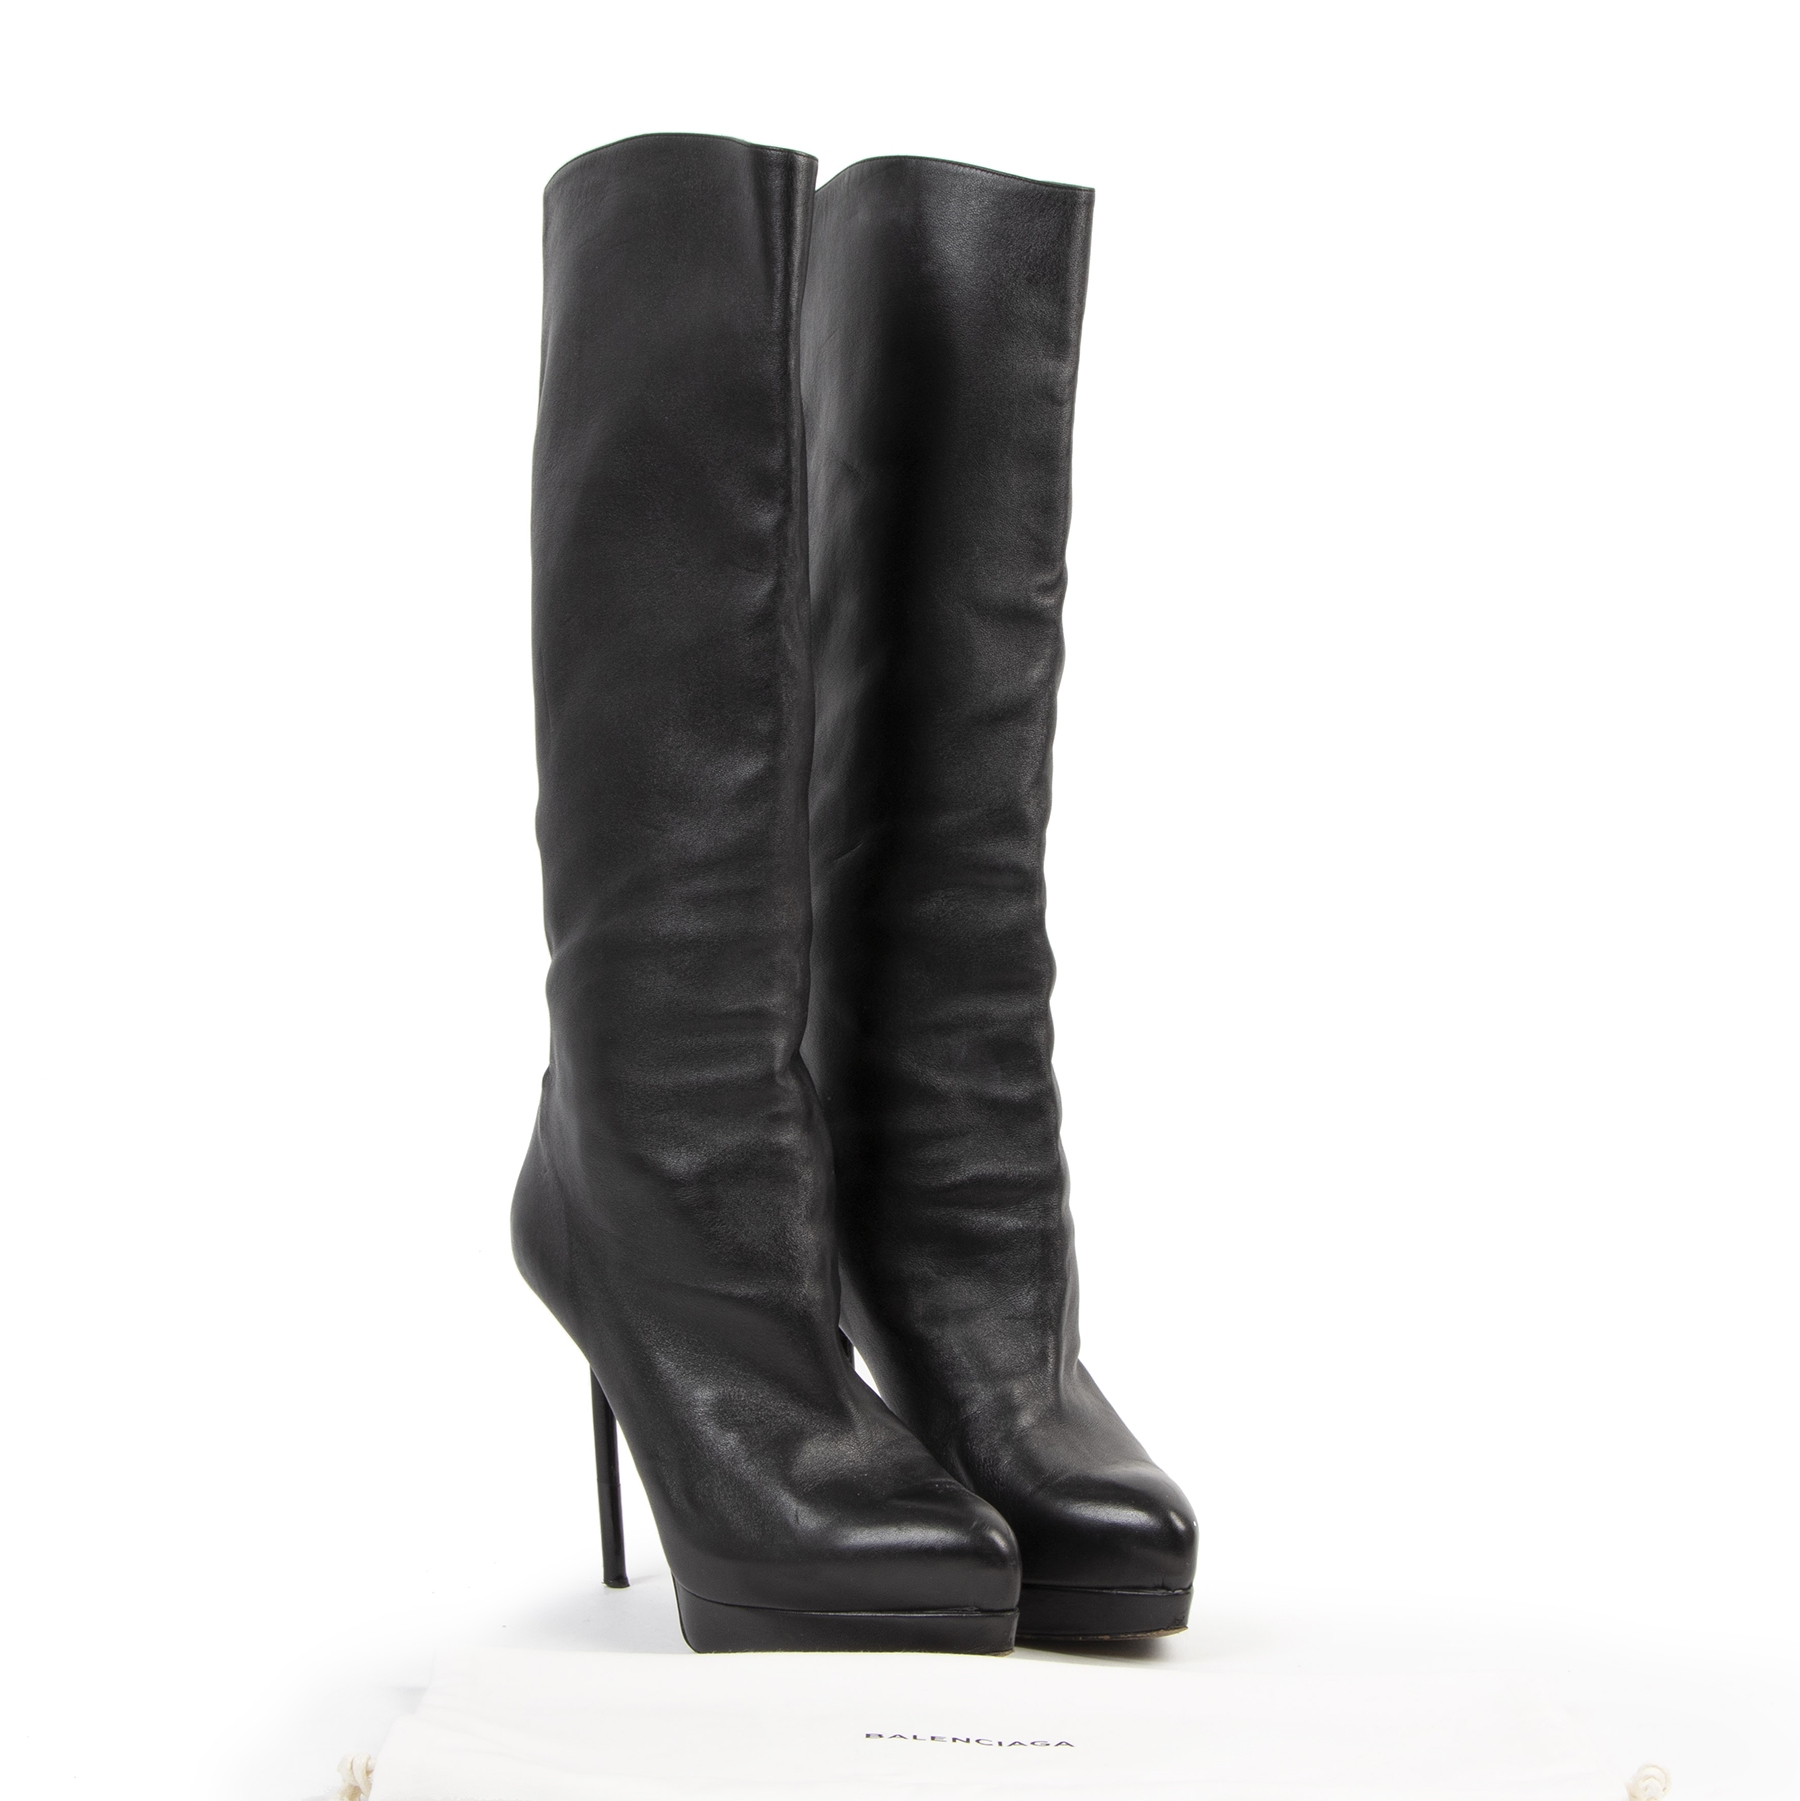 Authentieke tweedehands vintage Yves Saint Laurent Black Knee Boots - Size 40,5 bij online webshop LabelLOV